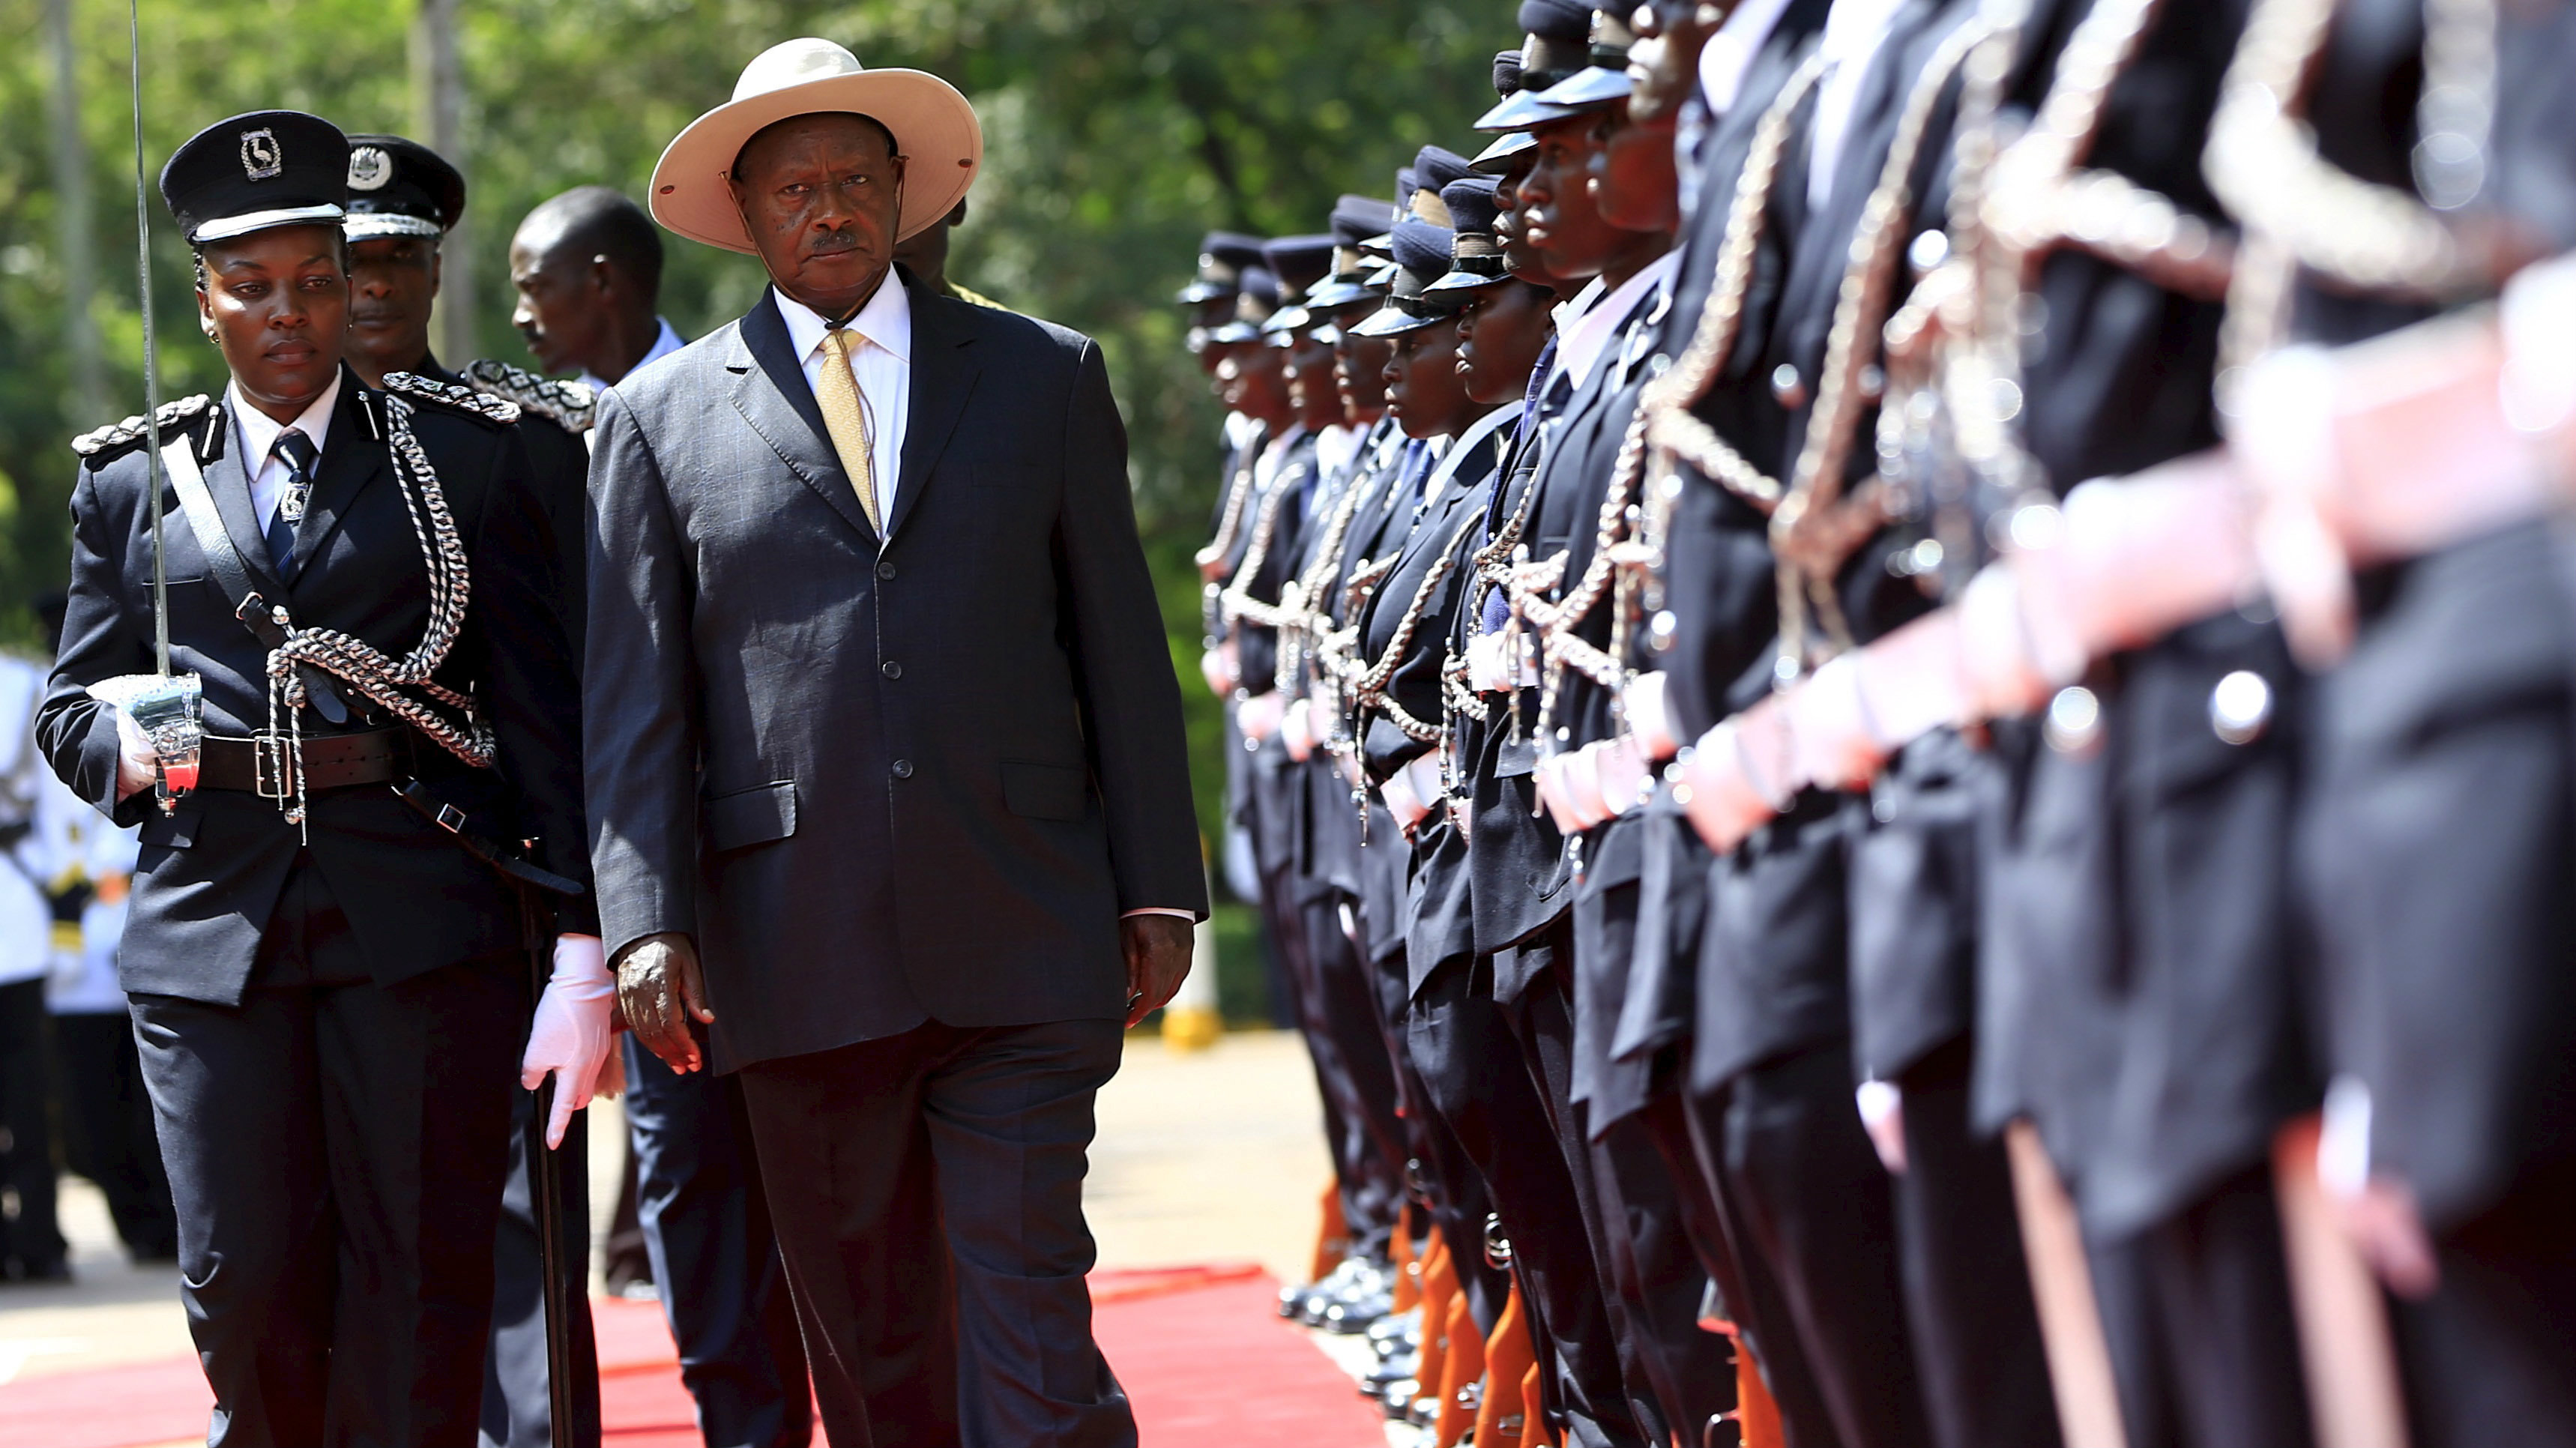 Uganda's President Yoweri Museveni inspects the guard of honour upon his arrival to deliver his state of the nation address in the capital Kampala June 4, 2015.